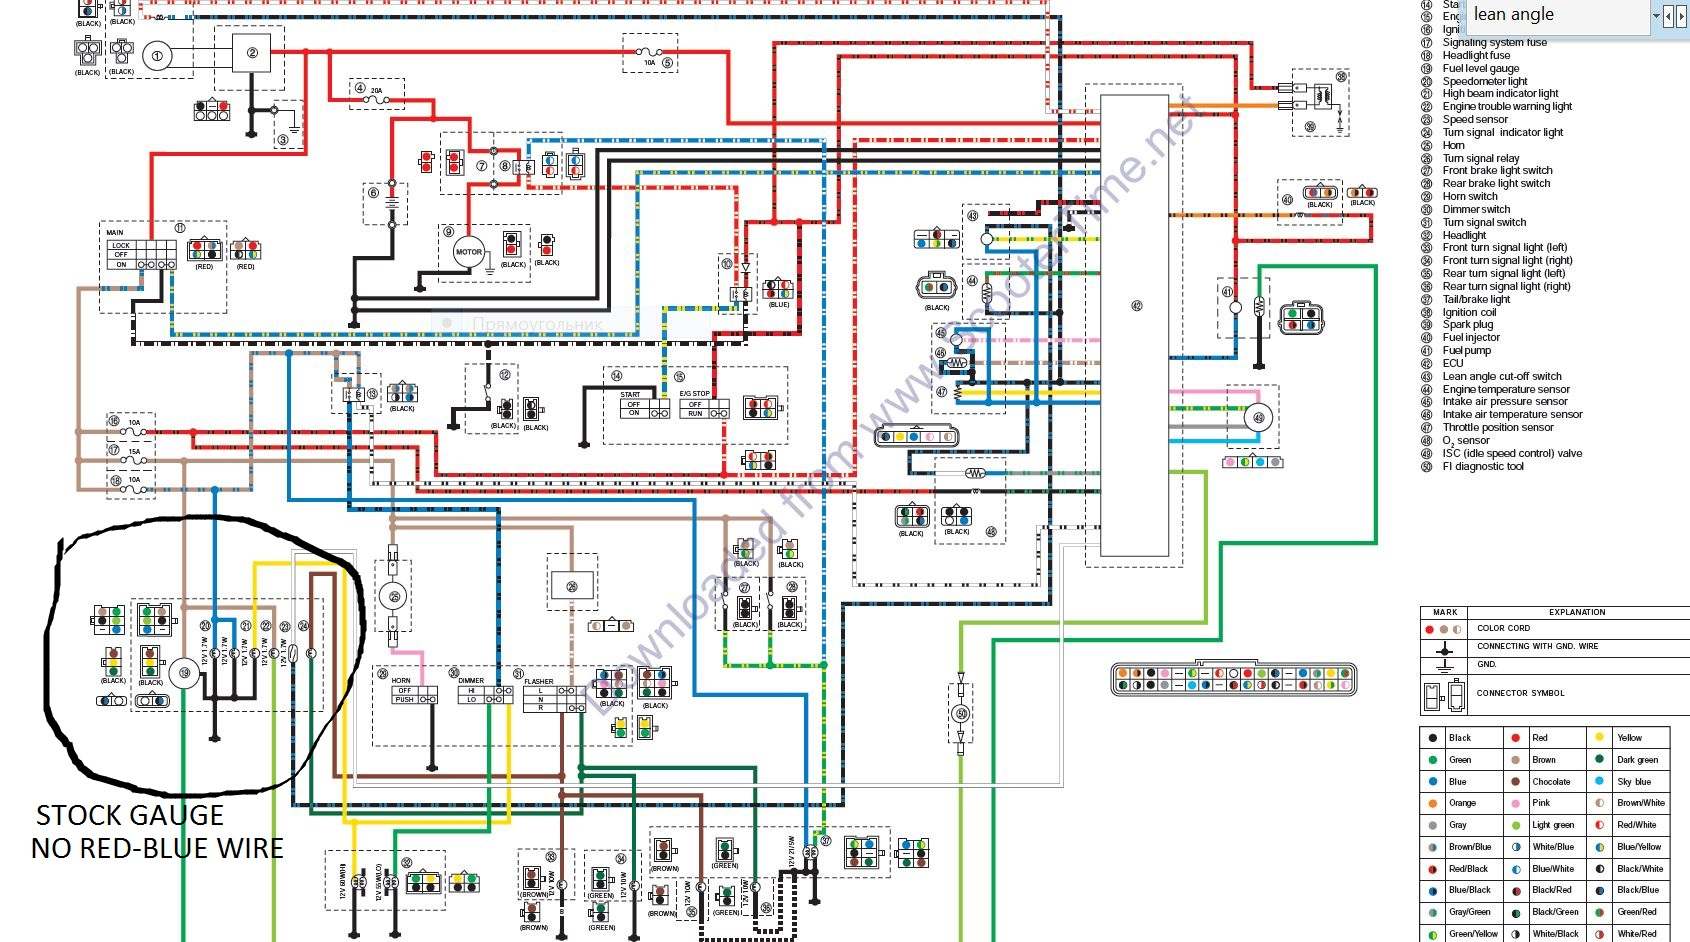 Yamaha Zuma Wiring Diagram Electrical Library 49cc 2 Stroke Scooter Diagrams Zumaforums Net View Topic Bws X Gauge Installed 50 Source